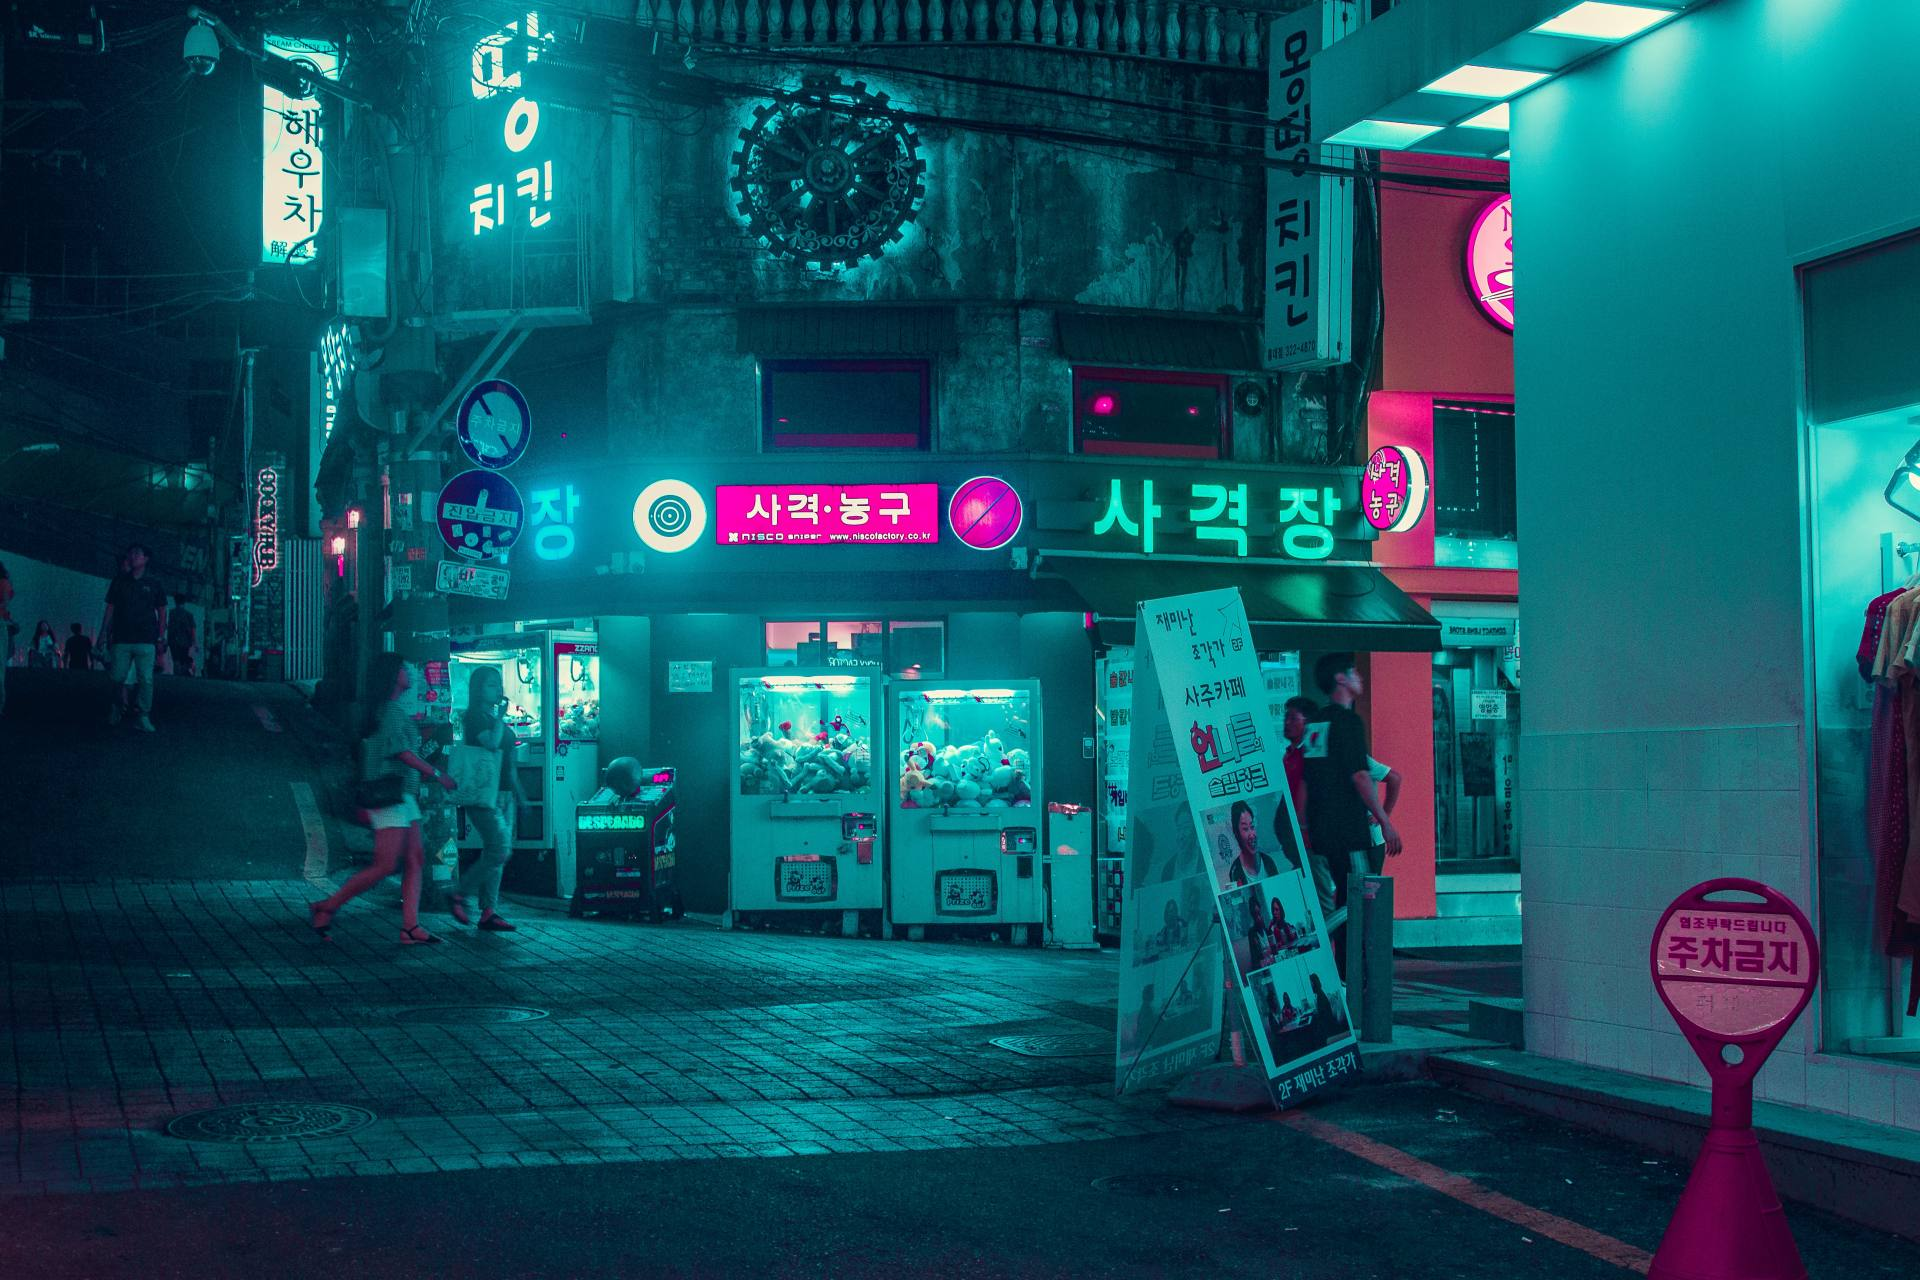 An illuminated internet cafe on a street during night in South-Korea.